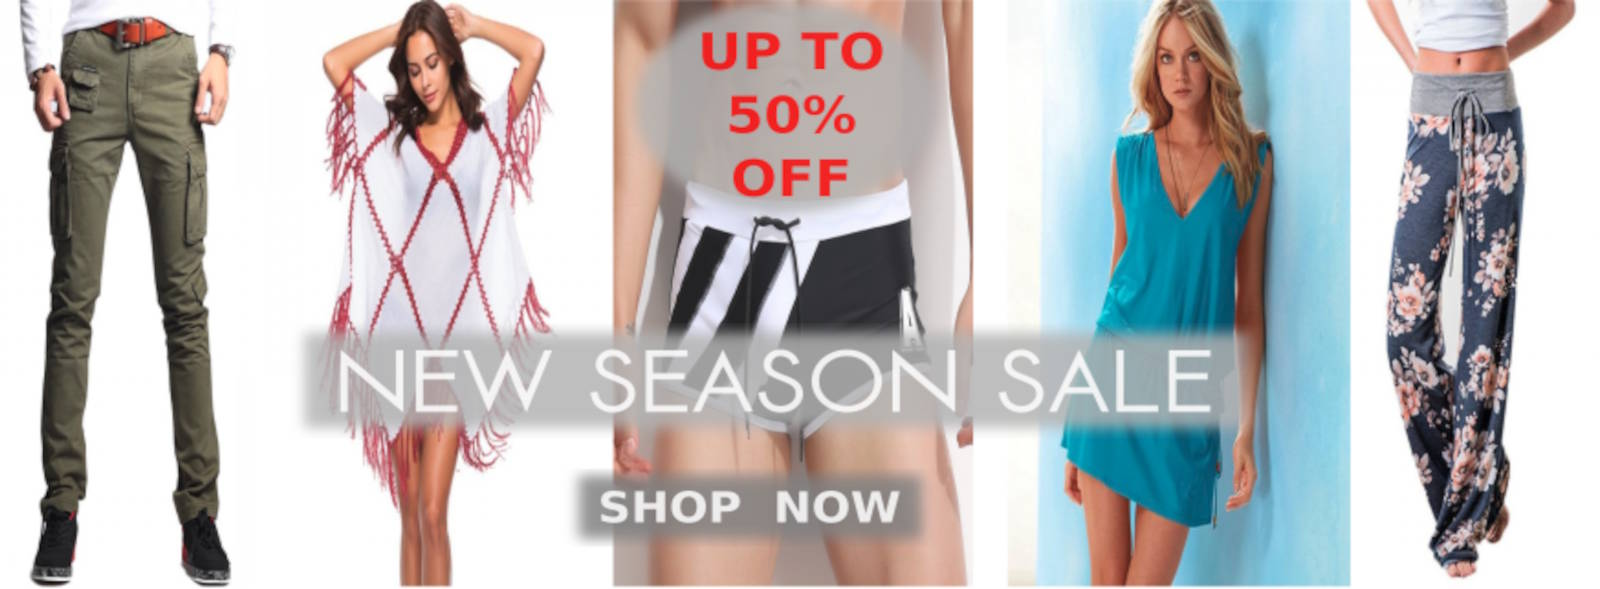 Buy New Arrival Clothing, Pants, Trousers, Tops, Tees, T-Shirts, Blouses, Dresses, Mini Dress, Maxis, Rompers, Swimsuits, Bikinis, Shirts, Shorts And Cool Summer Apparel For Men And Women At Cheapest Price With Discounts Of Up To 50% Off At Shopperwear Fashion